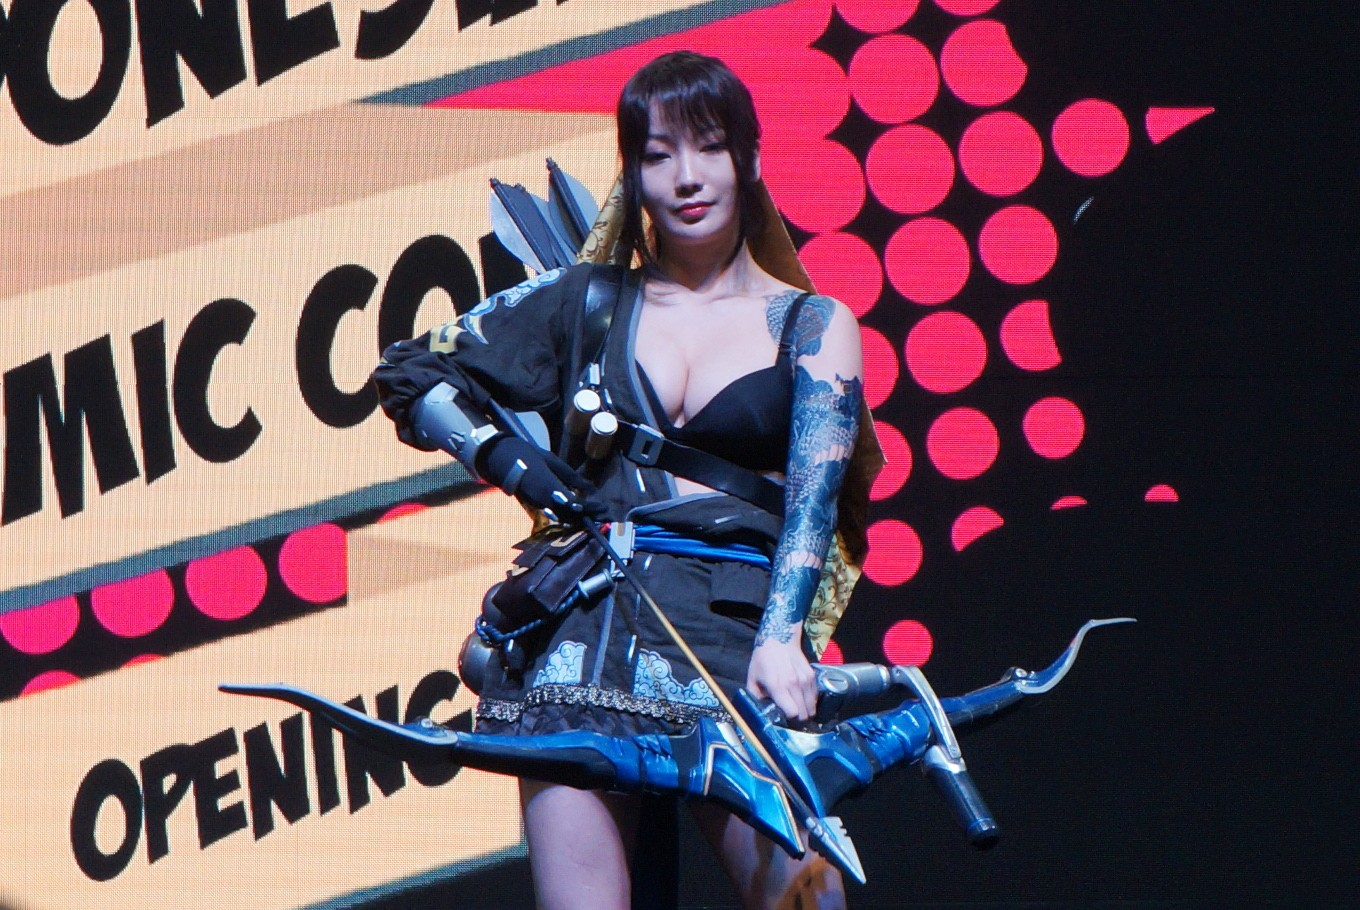 South Korean 'cosplayer' Pion Kim during the  2017 Indonesia Comic Con opening ceremony at the Jakarta Convention Center, Senayan, South Jakarta, on Saturday, Oct. 28, 2017.